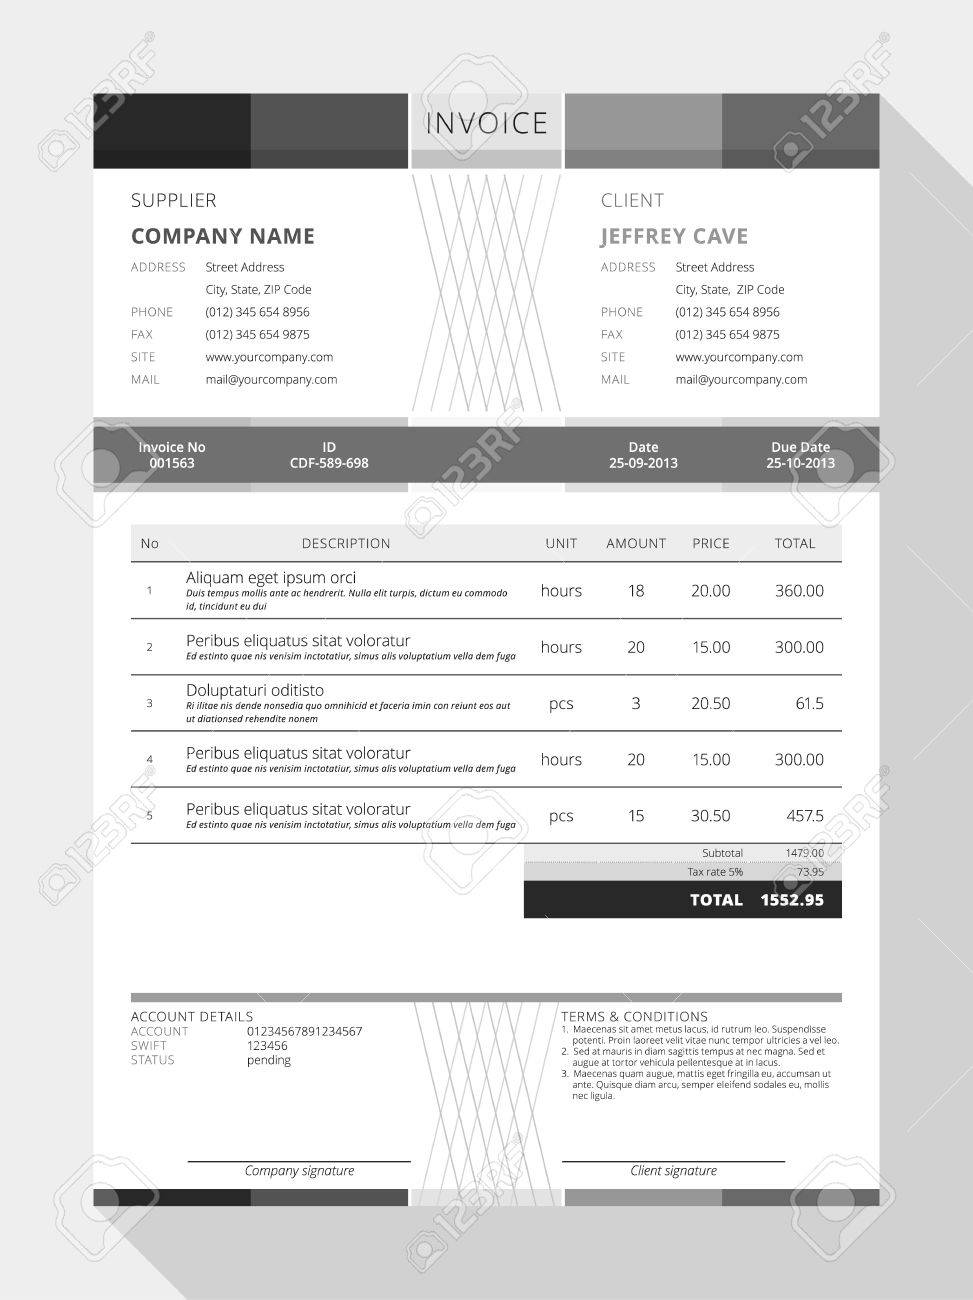 Howcanigettallerus  Pretty Design An Invoice  Professional Graphic Design Invoice  With Fair Vector Customizable Invoice Form Template Design Vector   Design An Invoice With Adorable Customised Receipt Books Also Received Receipt Template In Addition Epson Receipt And Lic Premium Paid Receipt As Well As Shop Receipt Template Additionally Receipt Of Rent Payment Template From Happytomco With Howcanigettallerus  Fair Design An Invoice  Professional Graphic Design Invoice  With Adorable Vector Customizable Invoice Form Template Design Vector   Design An Invoice And Pretty Customised Receipt Books Also Received Receipt Template In Addition Epson Receipt From Happytomco